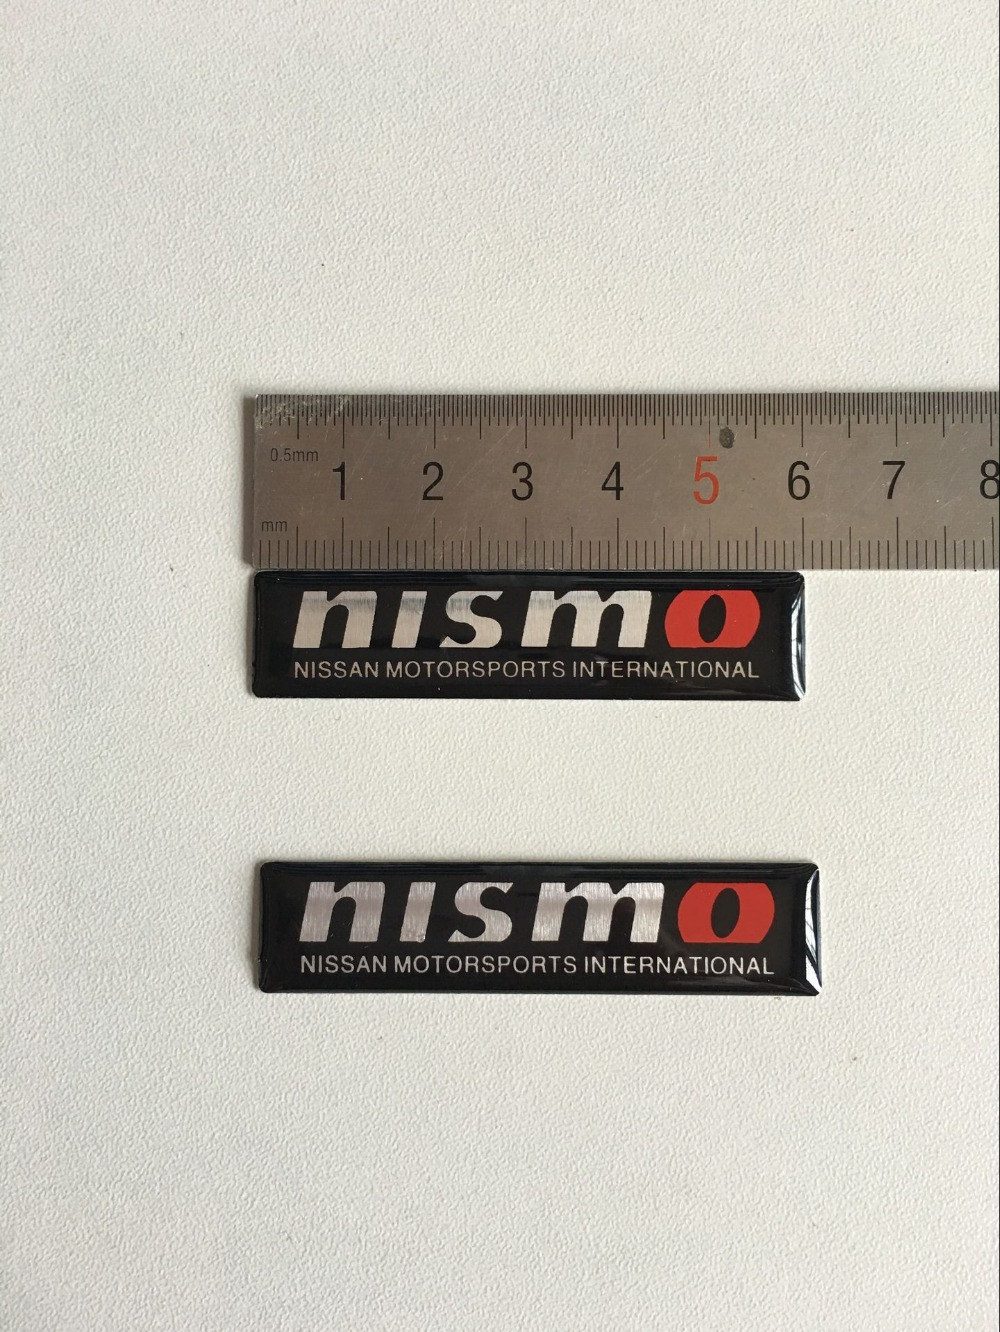 2pcs/lot automobile accessories car body styling stickers with for for Nissan Teana X-Trail Livina nismo logo emblem badge(China (Mainland))